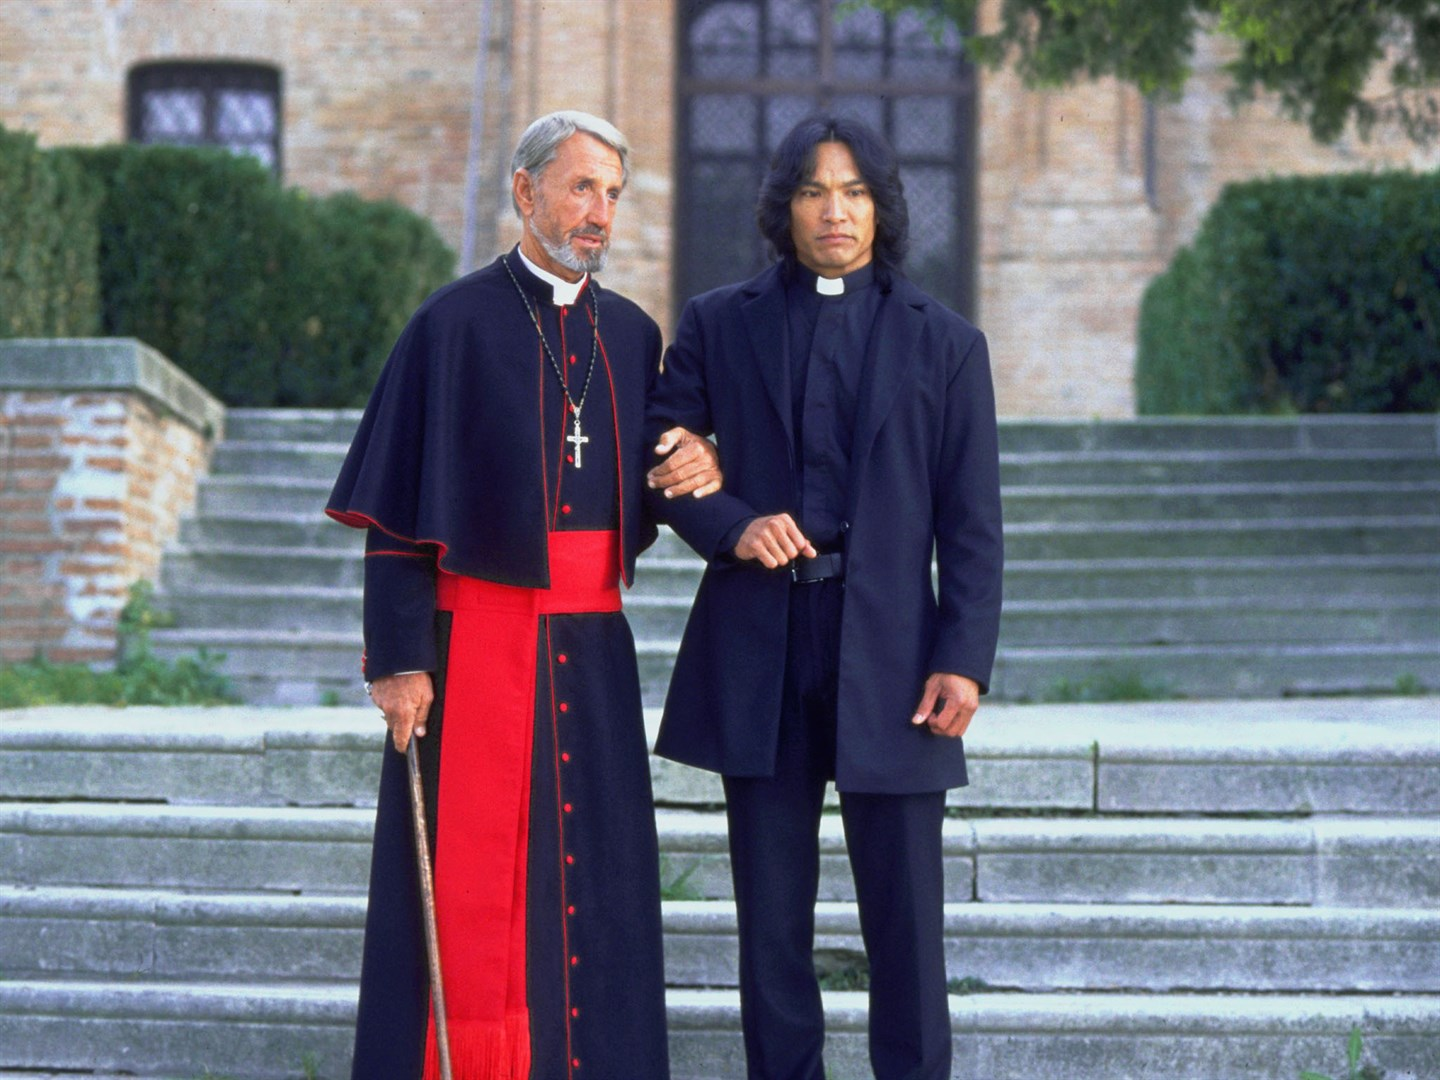 (l to r) Cardinal Siqueros (Roy Scheider) and the vampire-hunting priest Father Uffizi (Jason Scott Lee) in Dracula II: Ascension (2003)